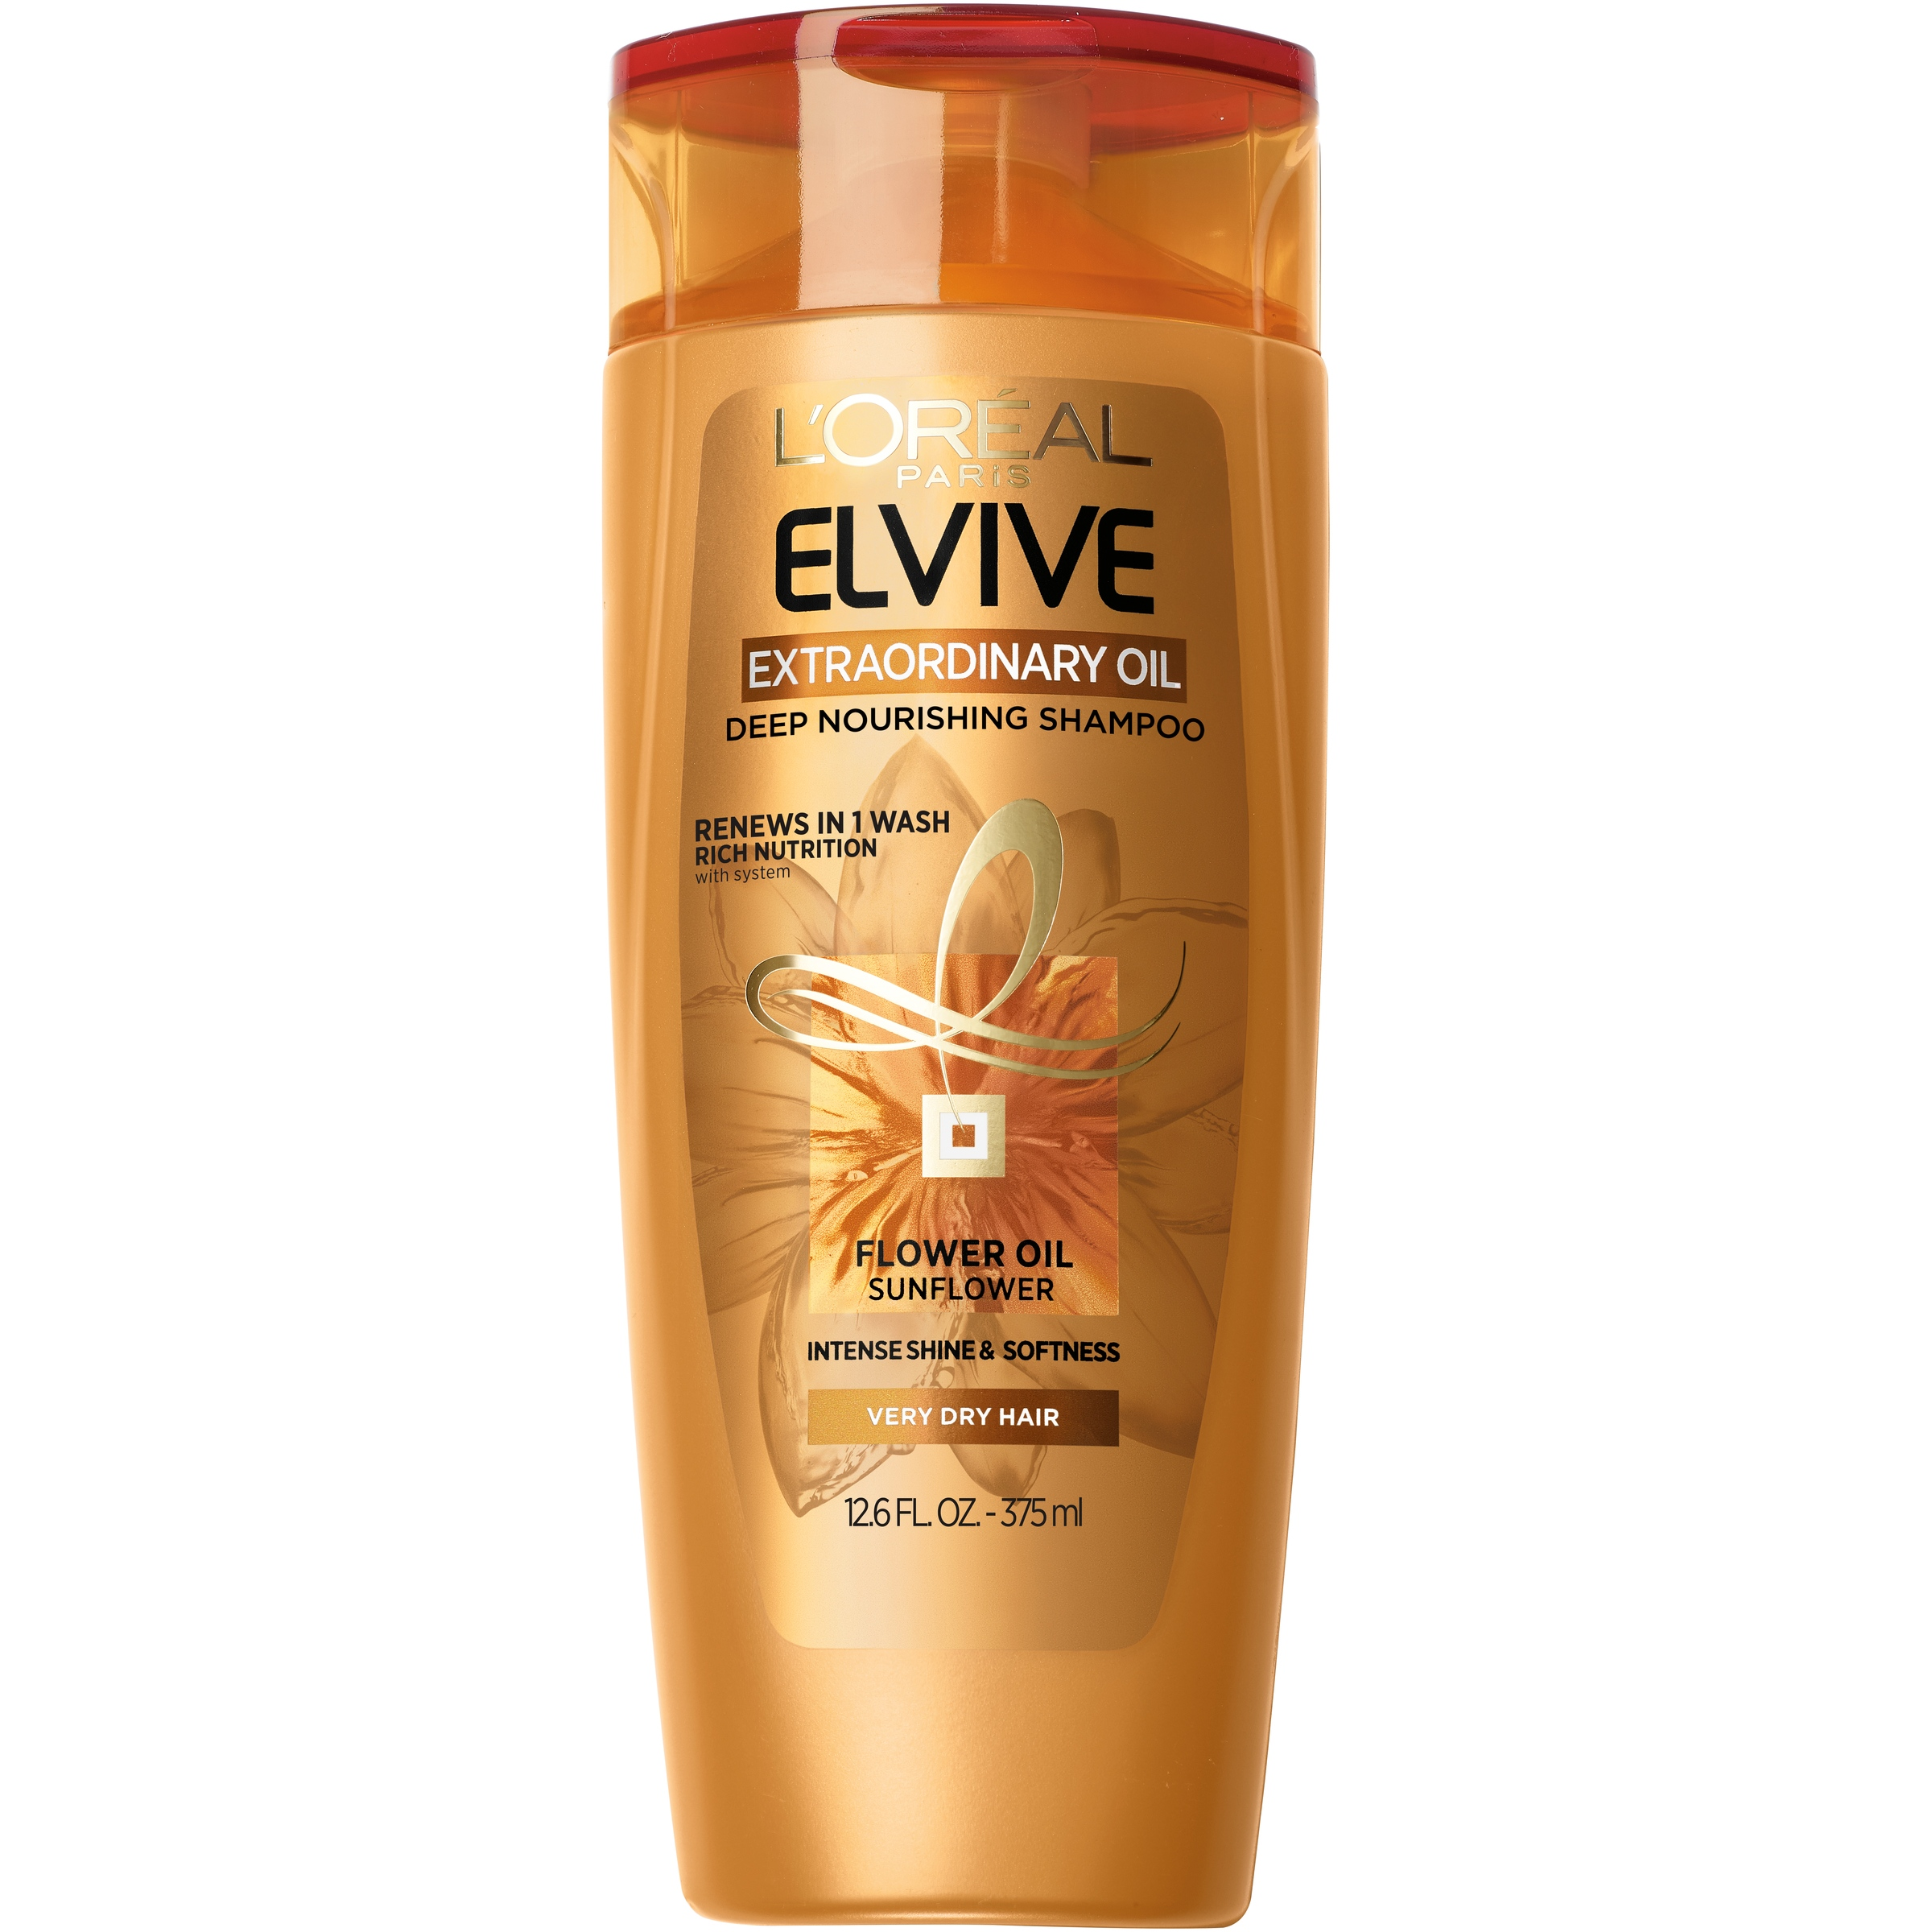 (2 Pack) L'Oreal Paris Elvive Extraordinary Oil Deep Nourishing Shampoo 12.6 fl. oz. Bottle